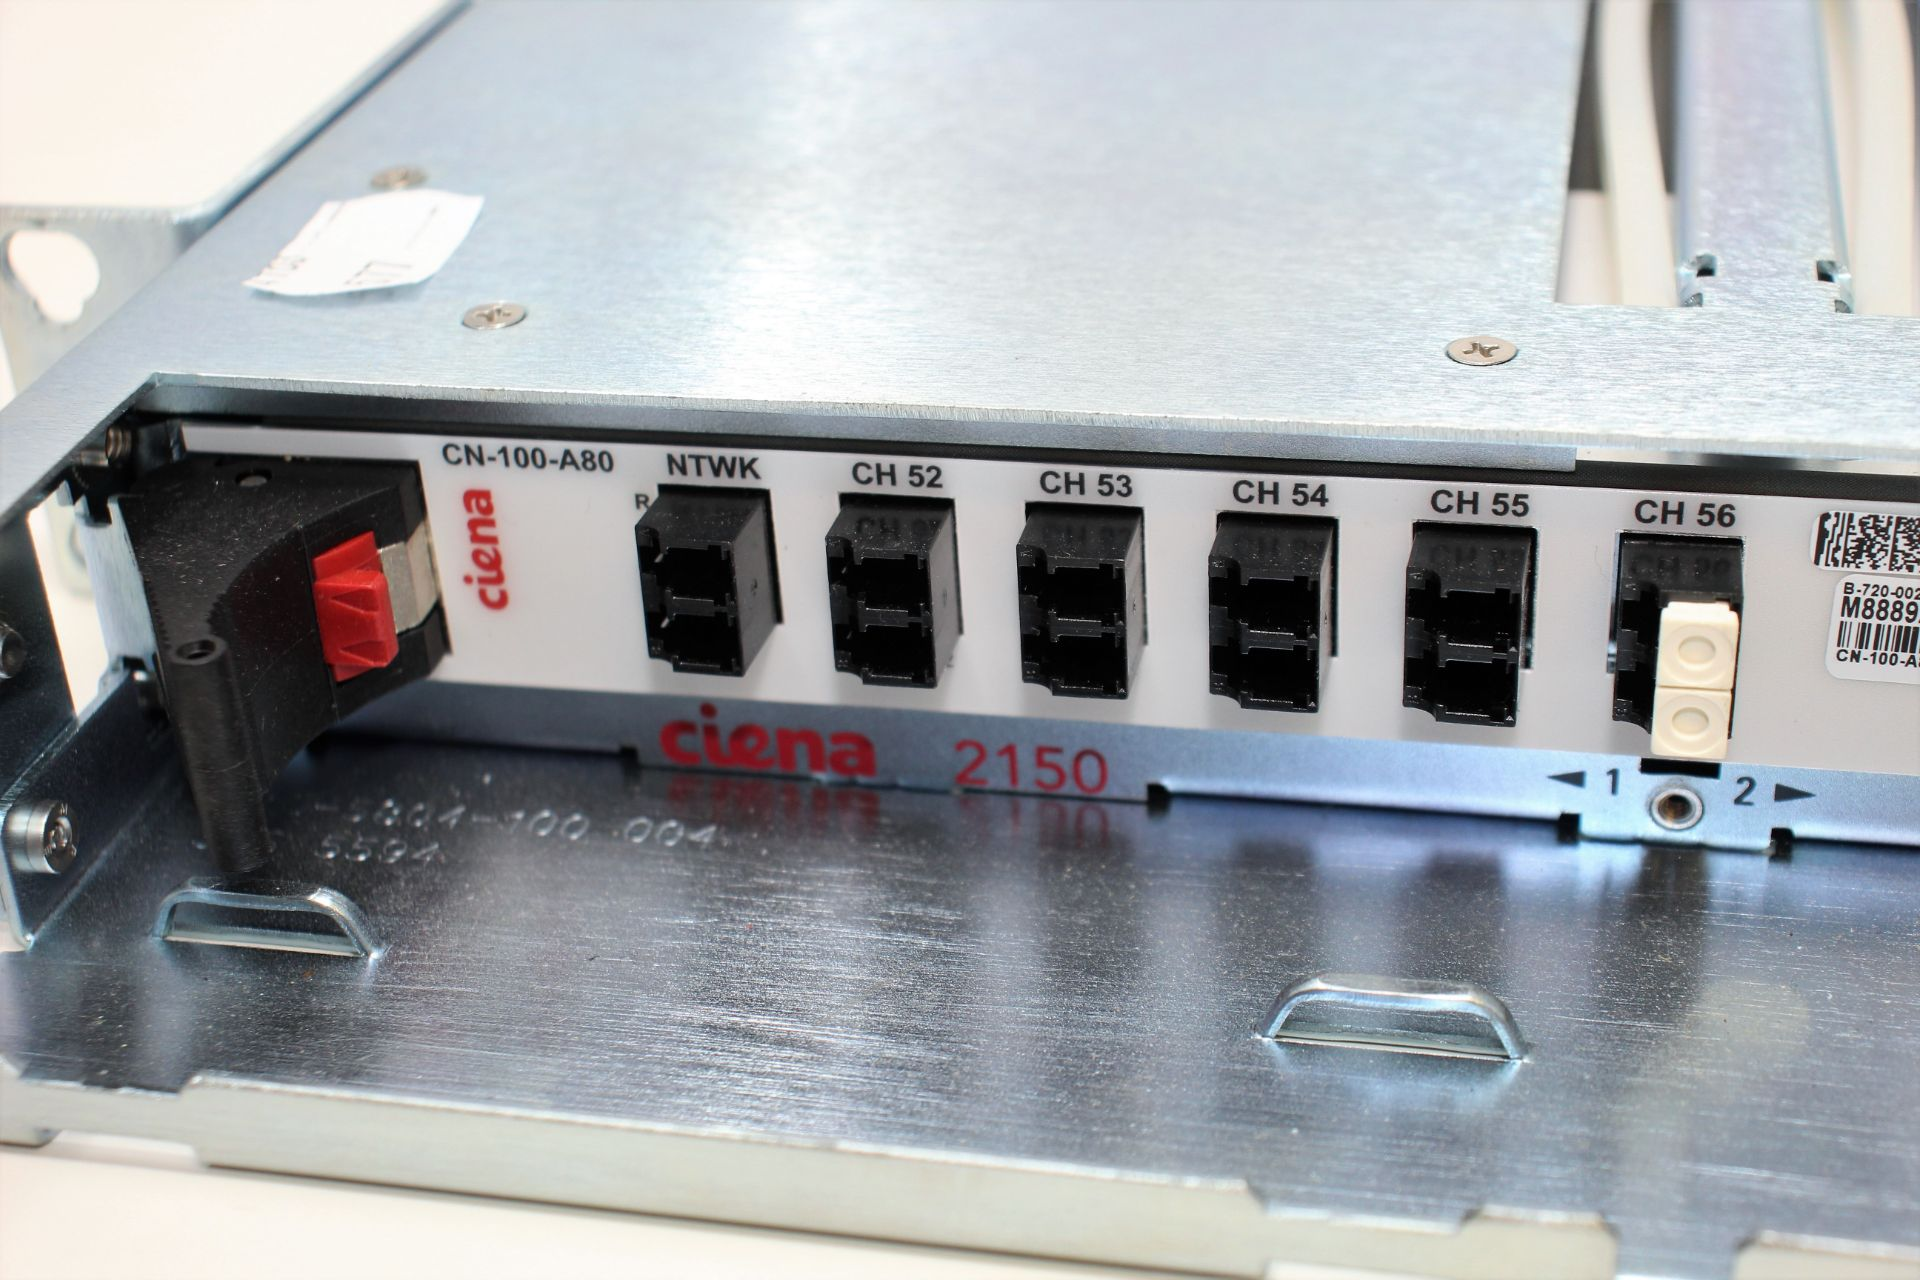 A pre-owned Ciena CN-100-A80 B-720-0022-001 WM0AALWEAA M8889224 DWDM Module (Untested, sold as - Image 3 of 3